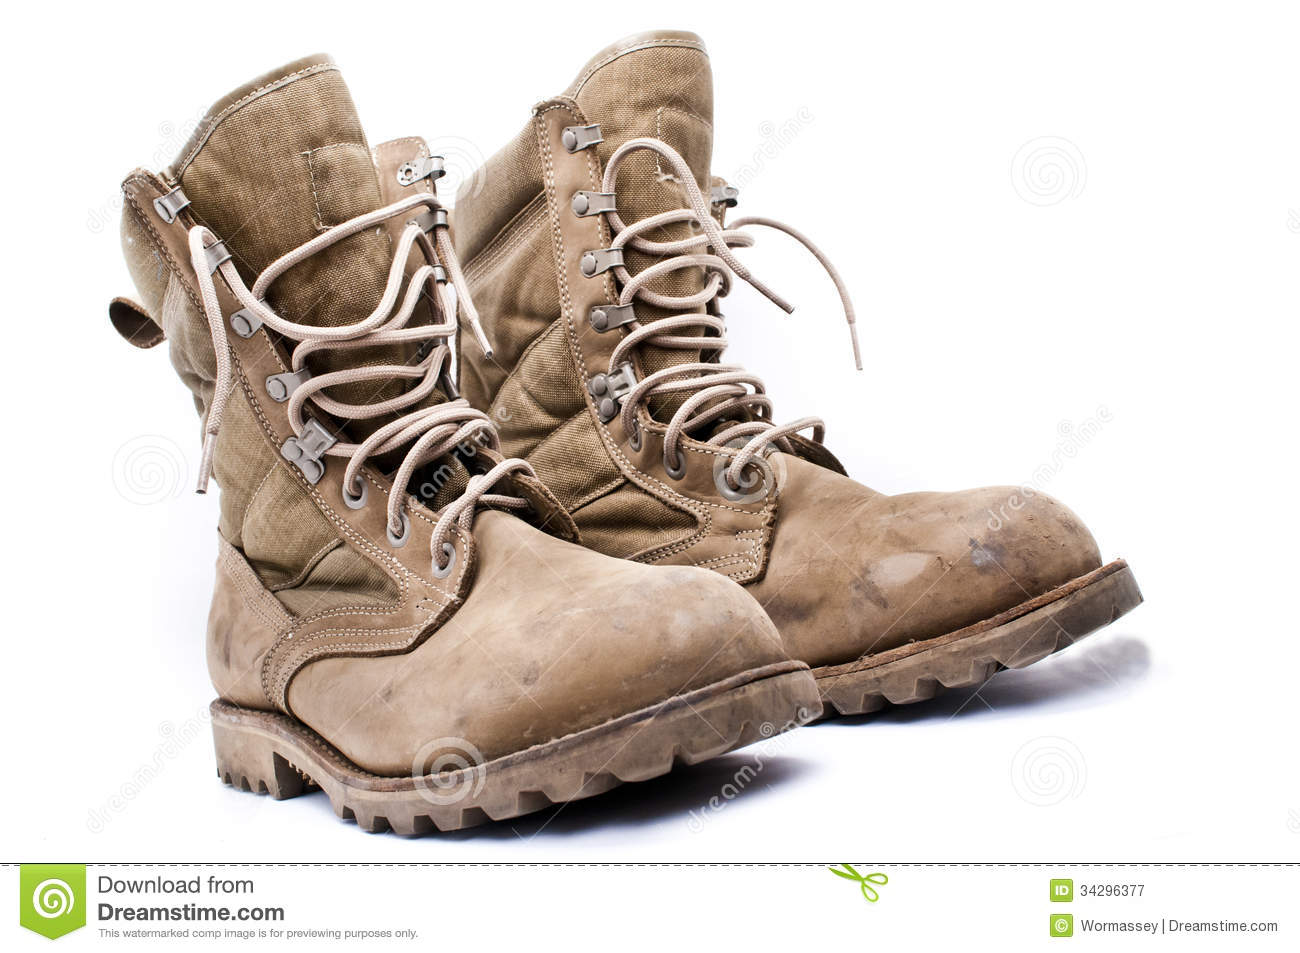 clipart of military boots - photo #27